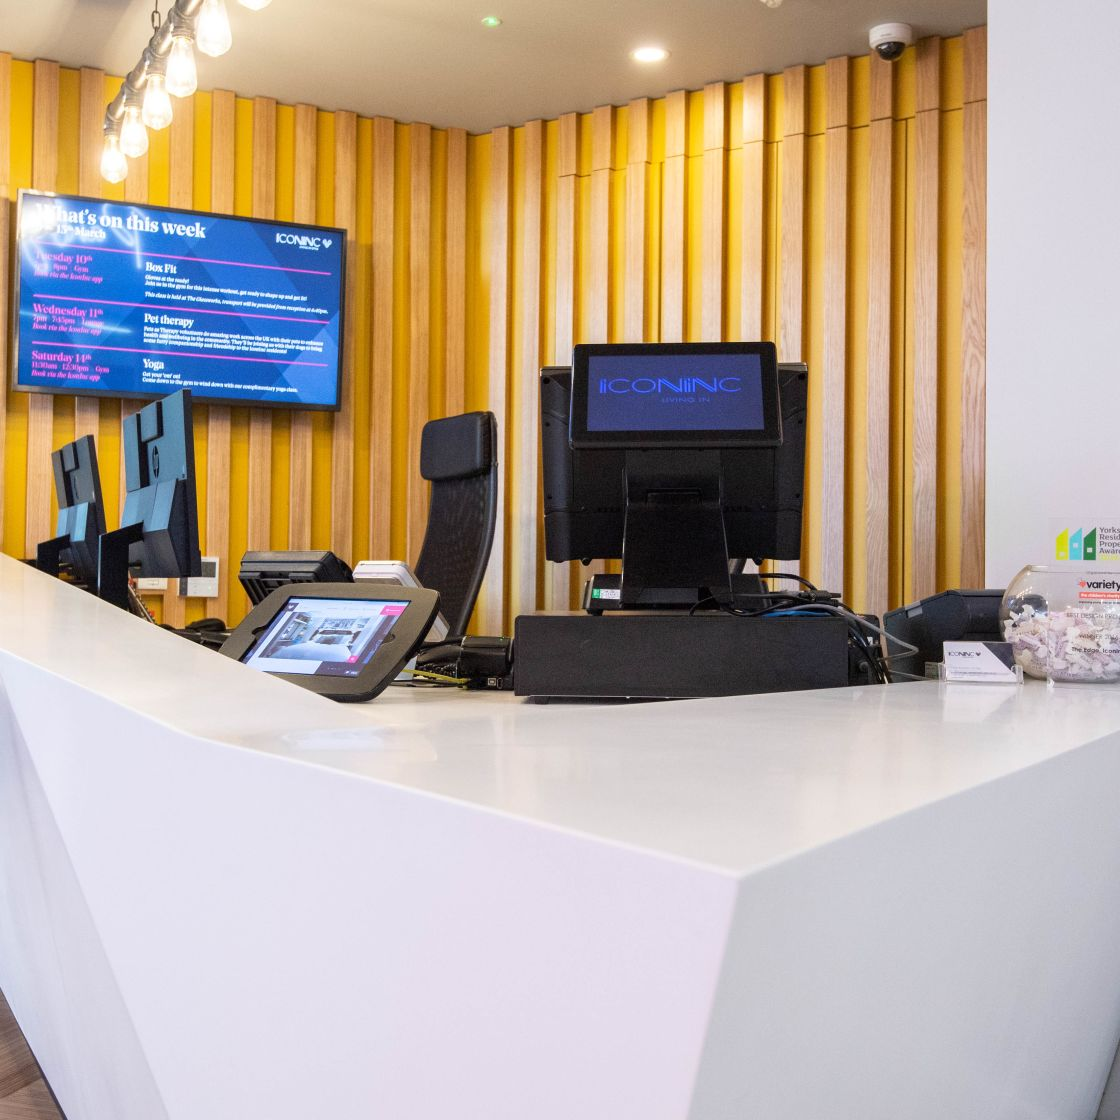 24 Hour Reception Desk at IconInc, The Edge. Student Accommodation in Leeds